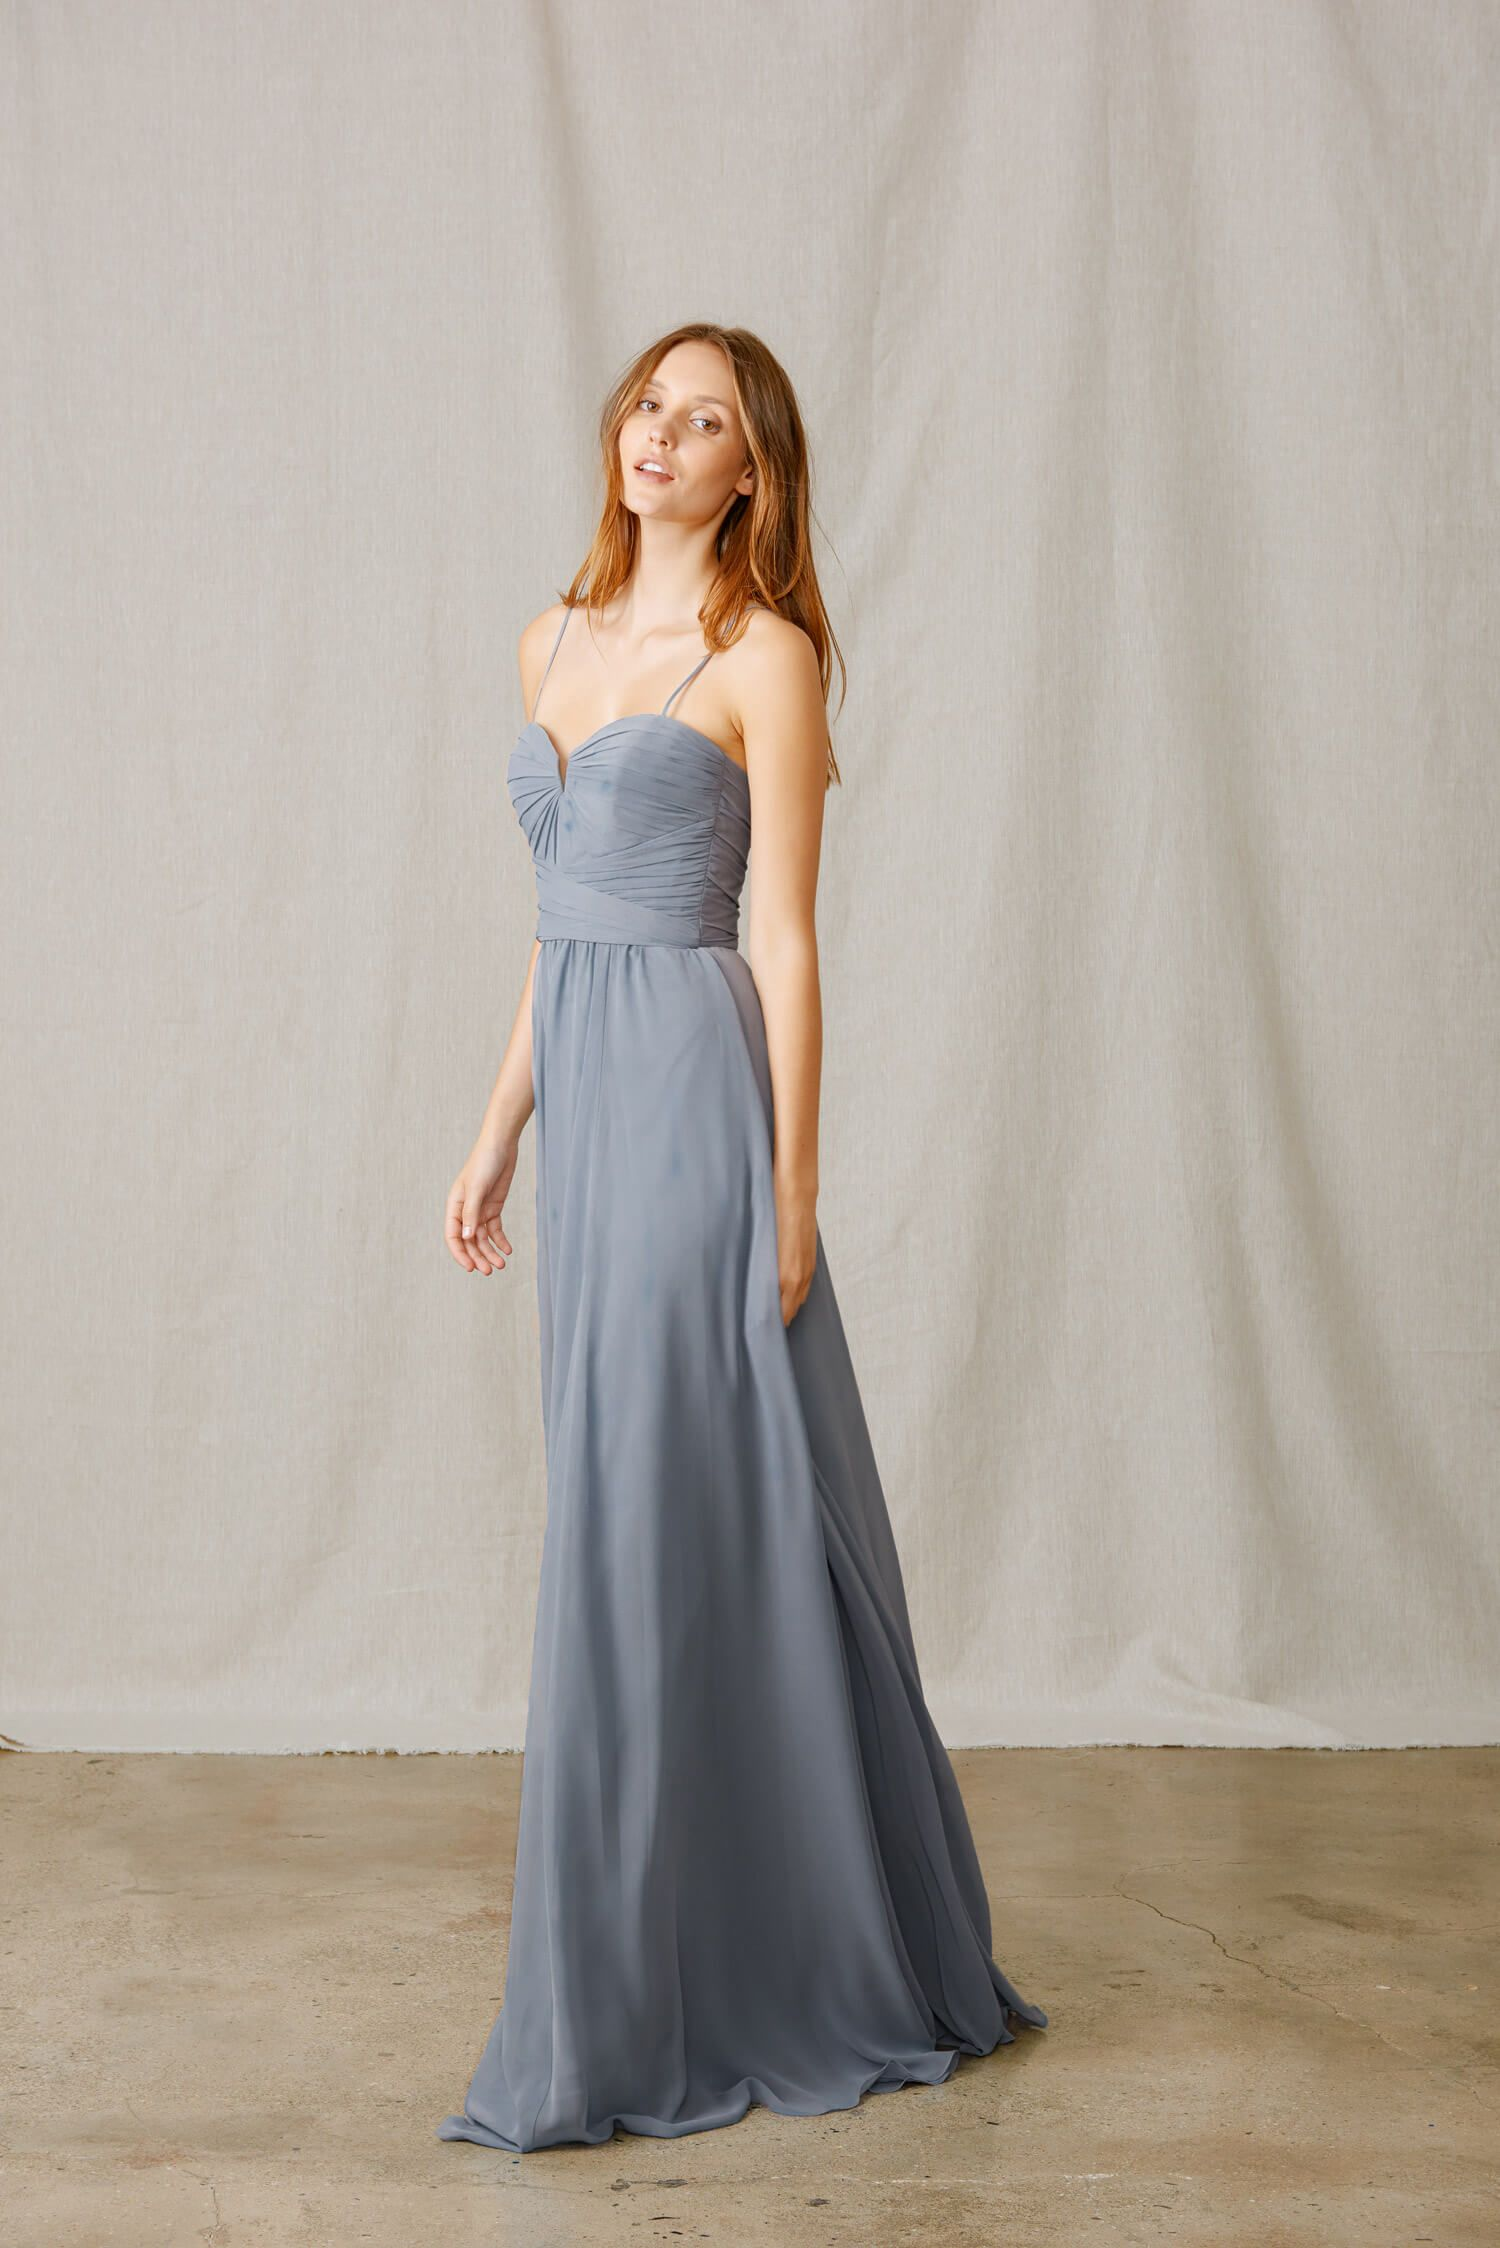 00d7c16e630 Amsale  260.00 Bella Bridesmaids Exclusive style. Spaghetti strap Flat  Chiffon gown with notched V neckline. Wraps at the waist with long flowy  skirt.